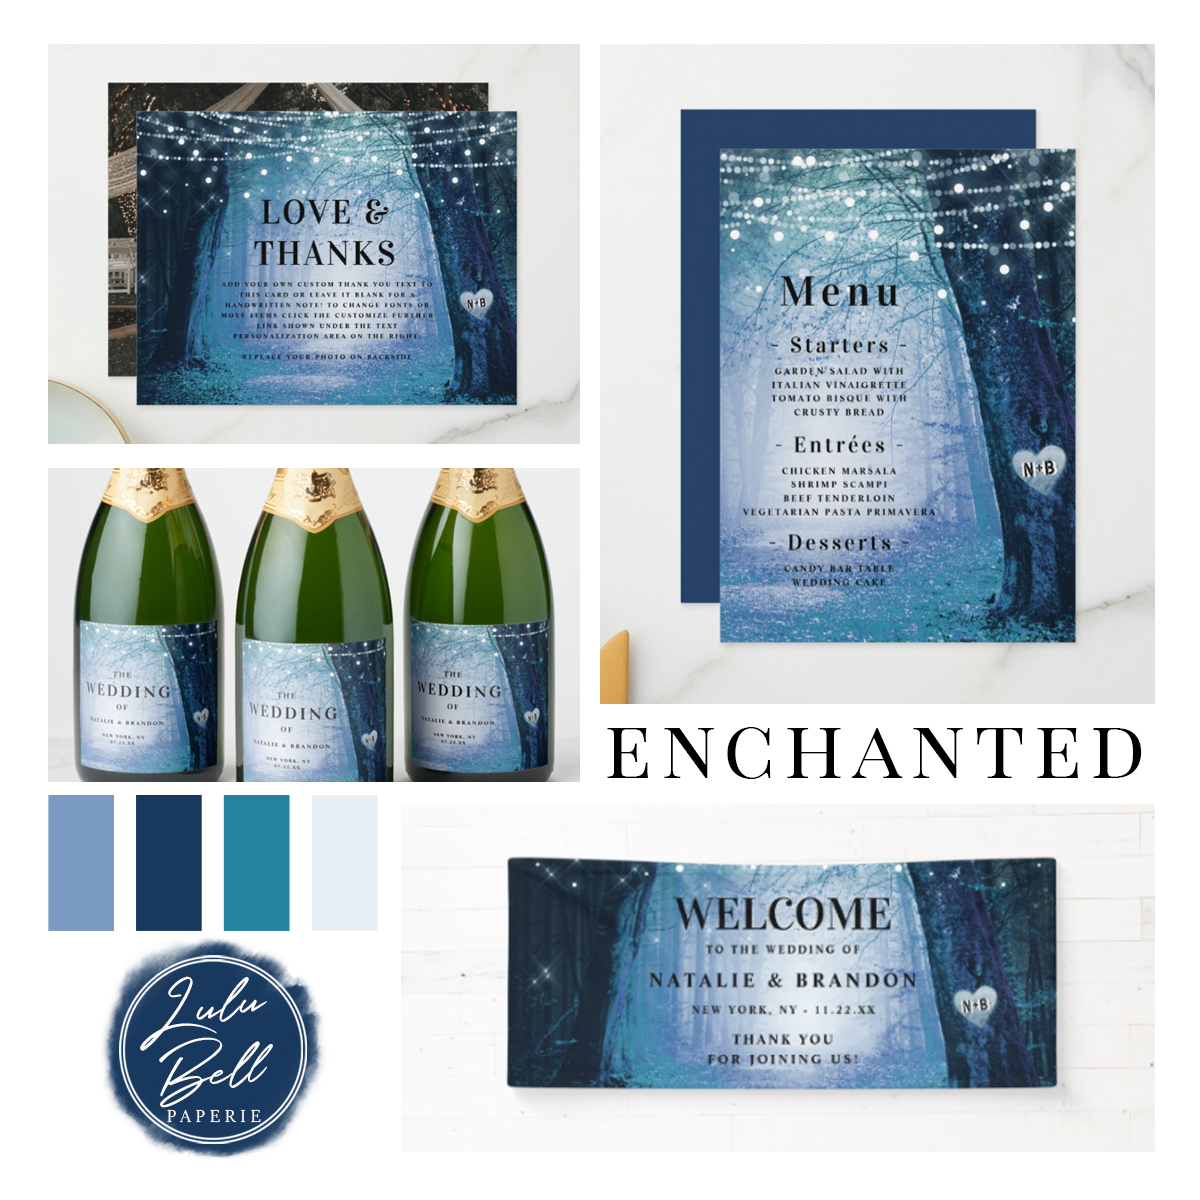 Enchanted Forest Wedding Theme in Navy Blue Color Palette | Thank You Cards, Dinner Menus, Mini Champagne Bottle Labels, and Welcome Wedding Banner Sign